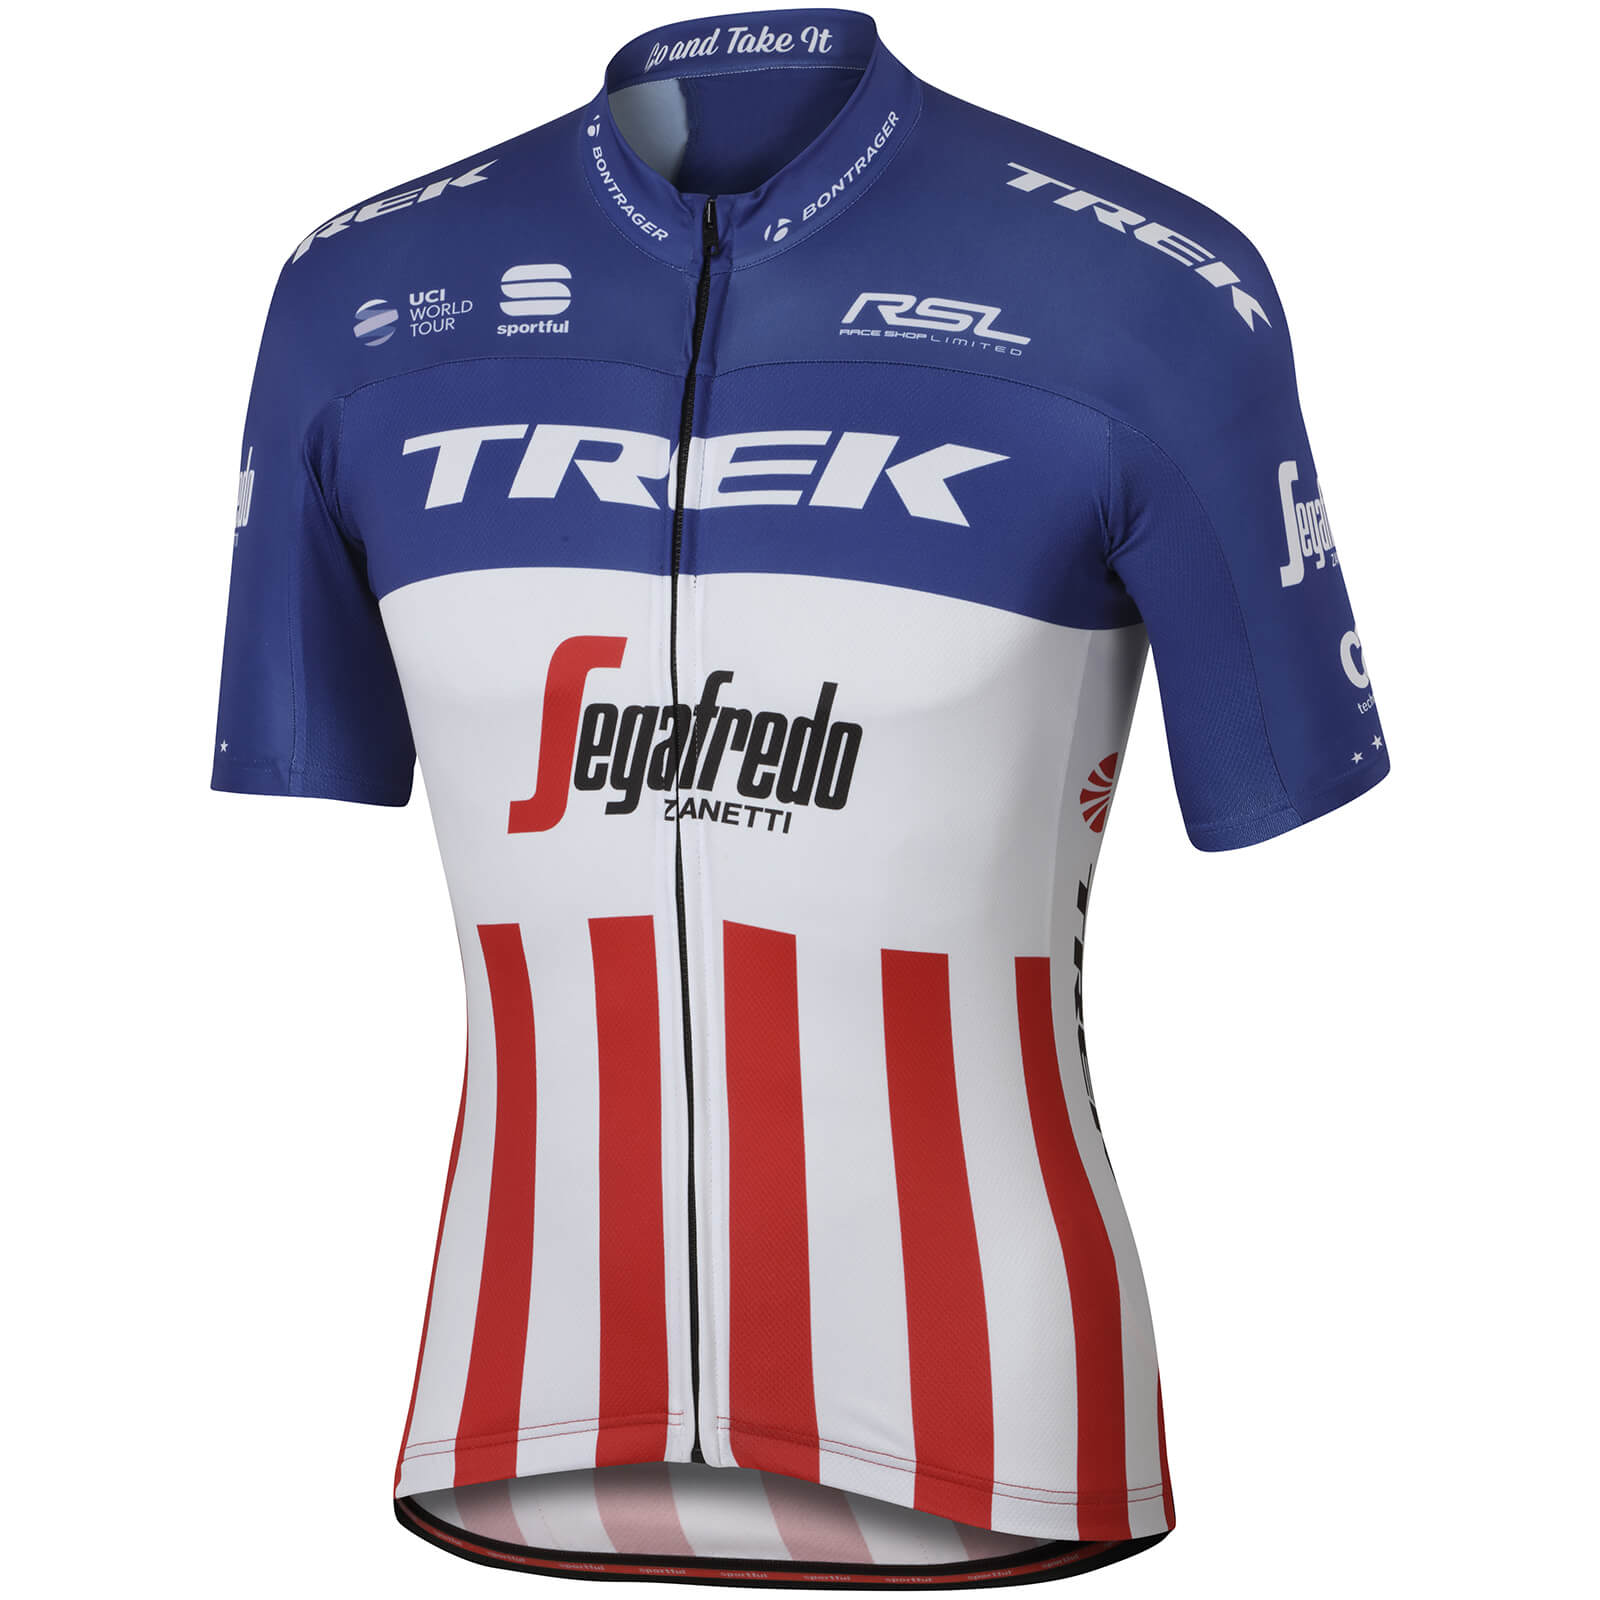 Sportful Trek-Segafredo BodyFit Pro Team USA Champion Short Sleeve Jersey -  White Blue Red  9617af254